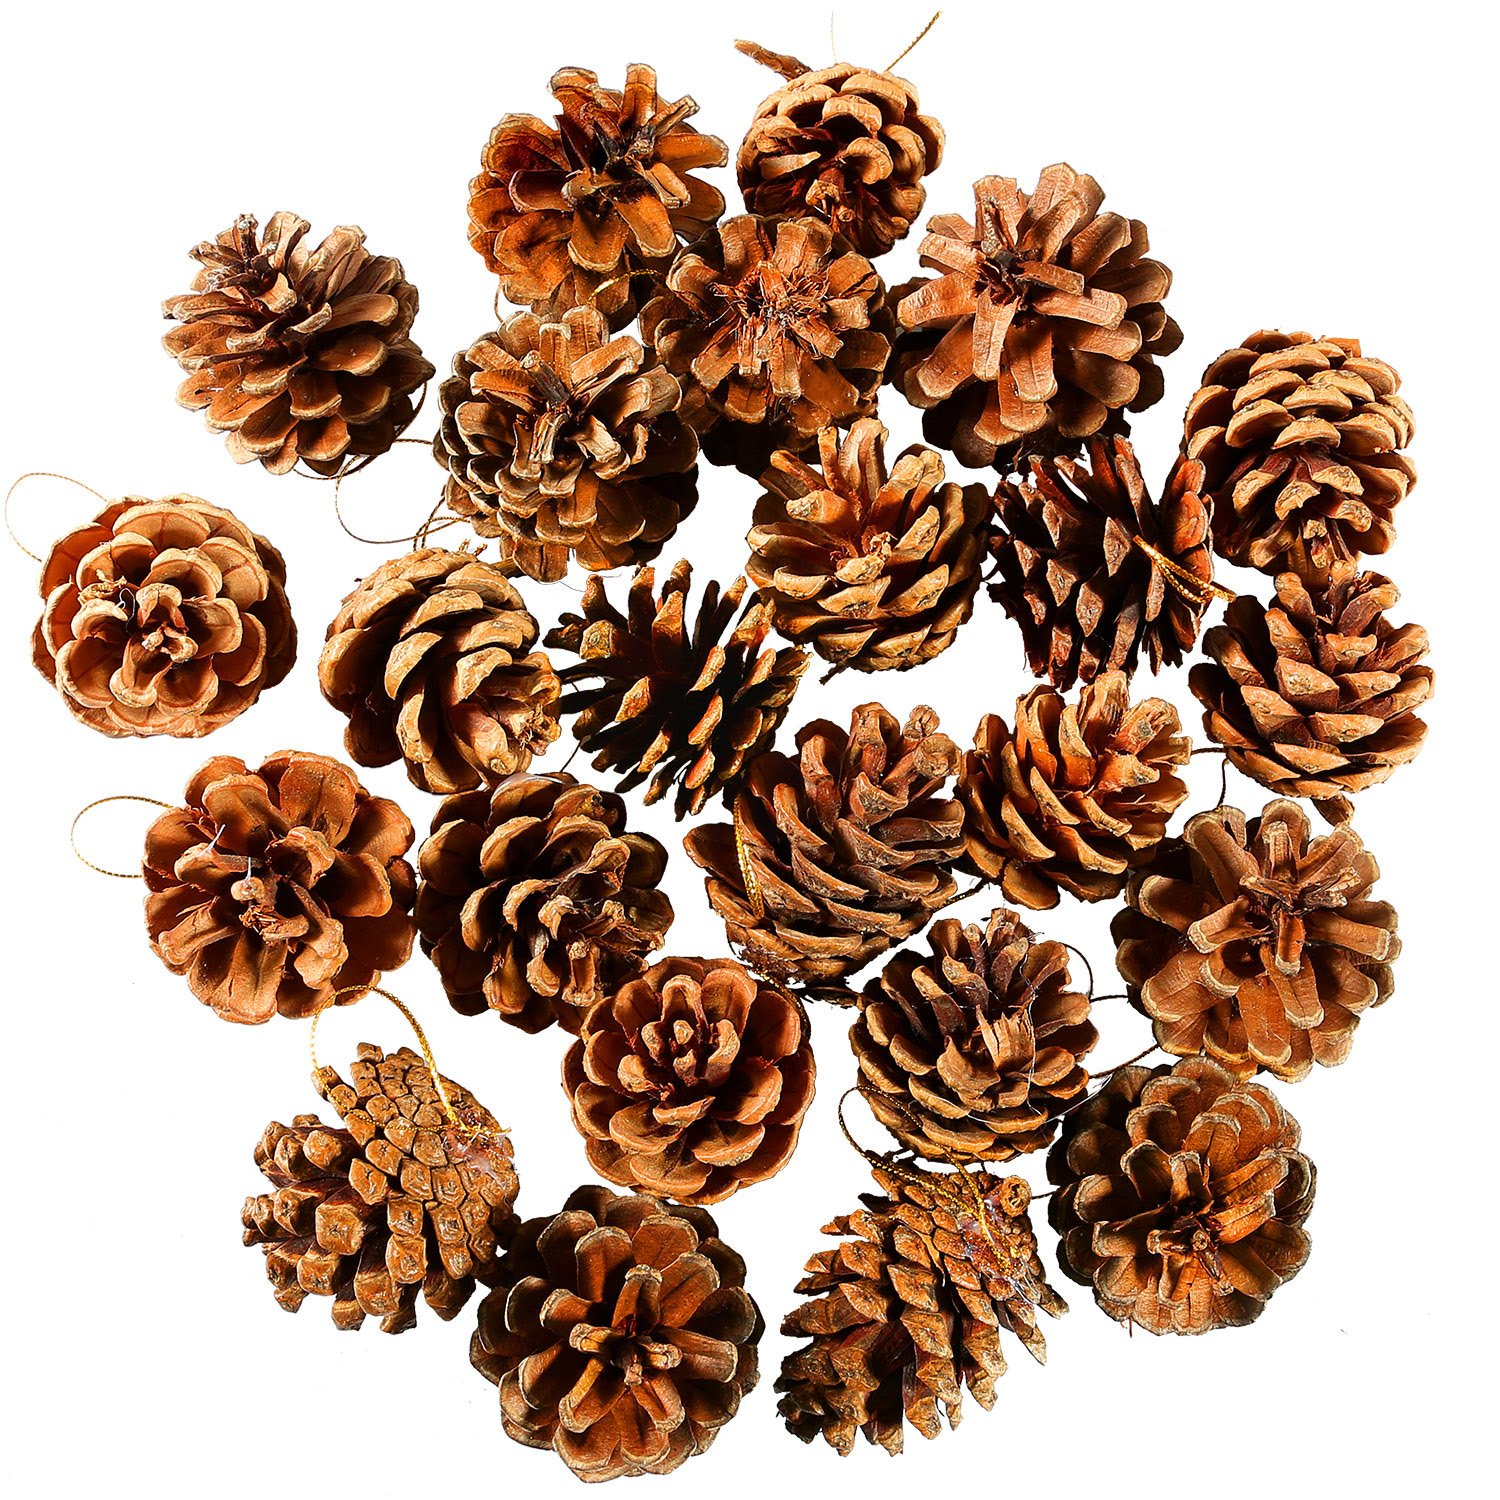 Coobey 24 Pieces Pine Cones Ornament Natural PineCones With String Pendant Crafts for Gift Tag Tree Party Hanging Decoration (Natural) by Coobey